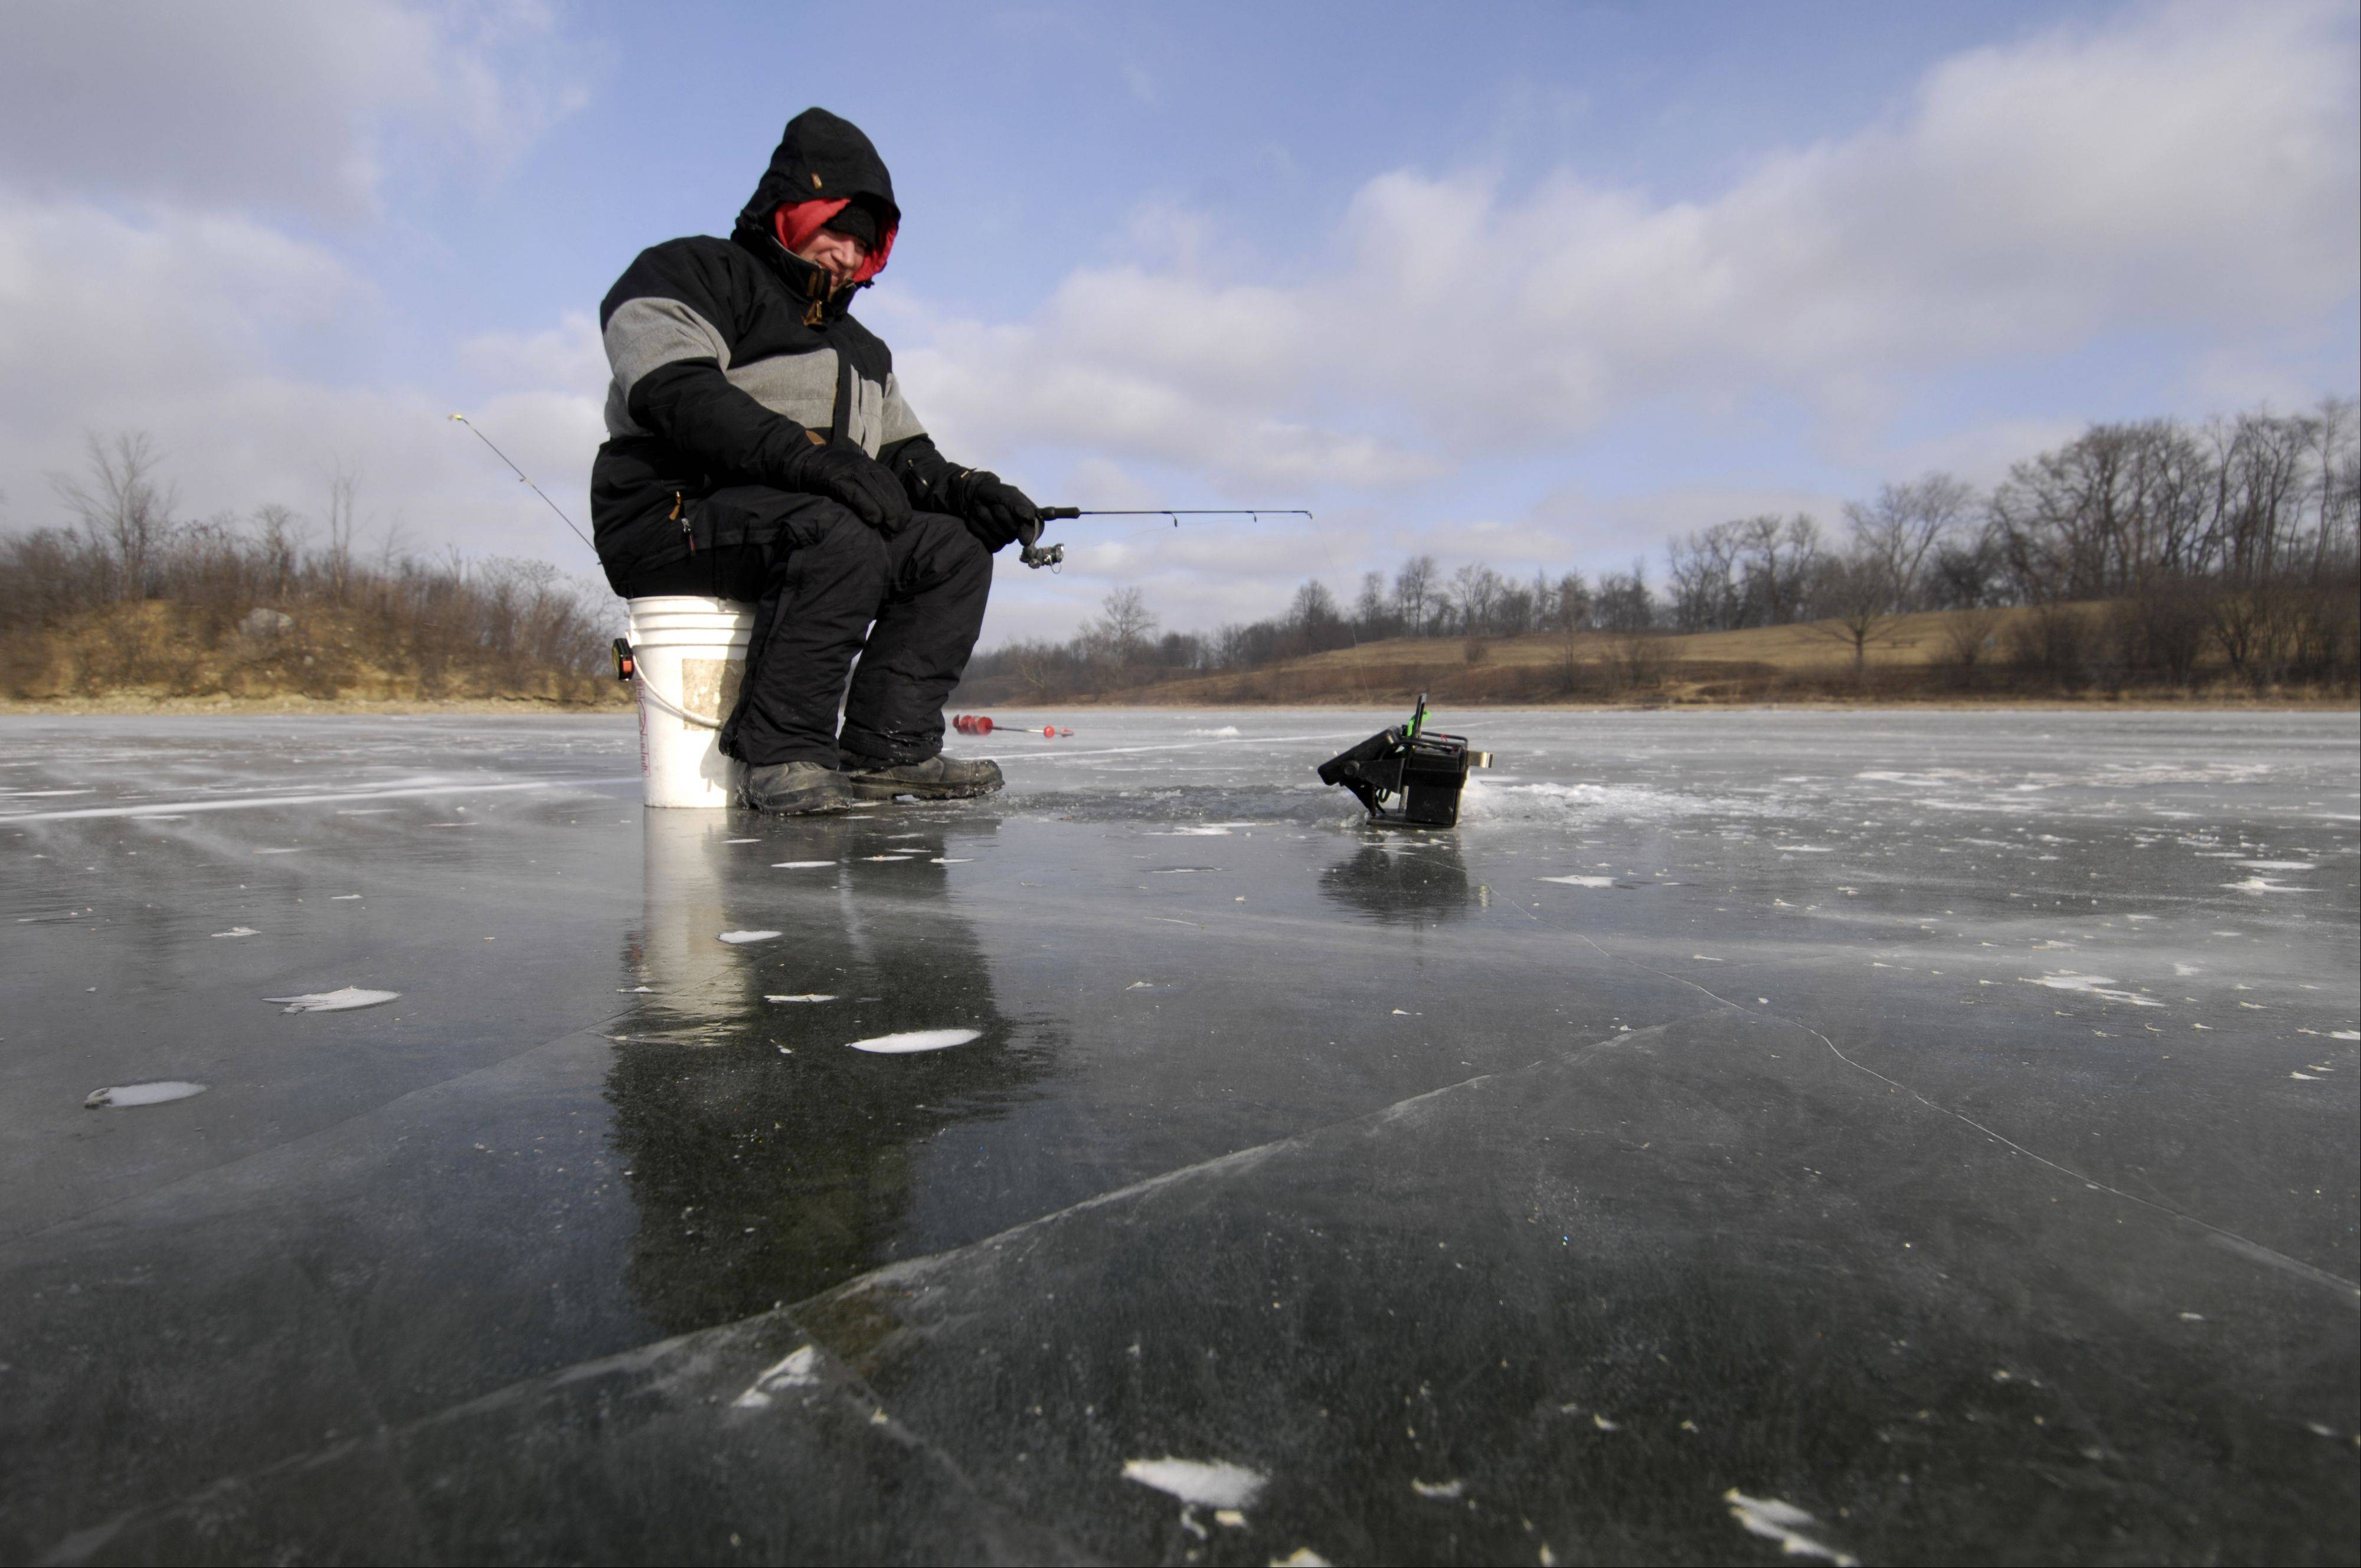 Mark Black/mblack@dailyherald.com Karl Petipren of Naperville braves single digit temperatures to do some ice fishing for walleye at Blackwell Forest Preserve. The ice is about six inches thick.